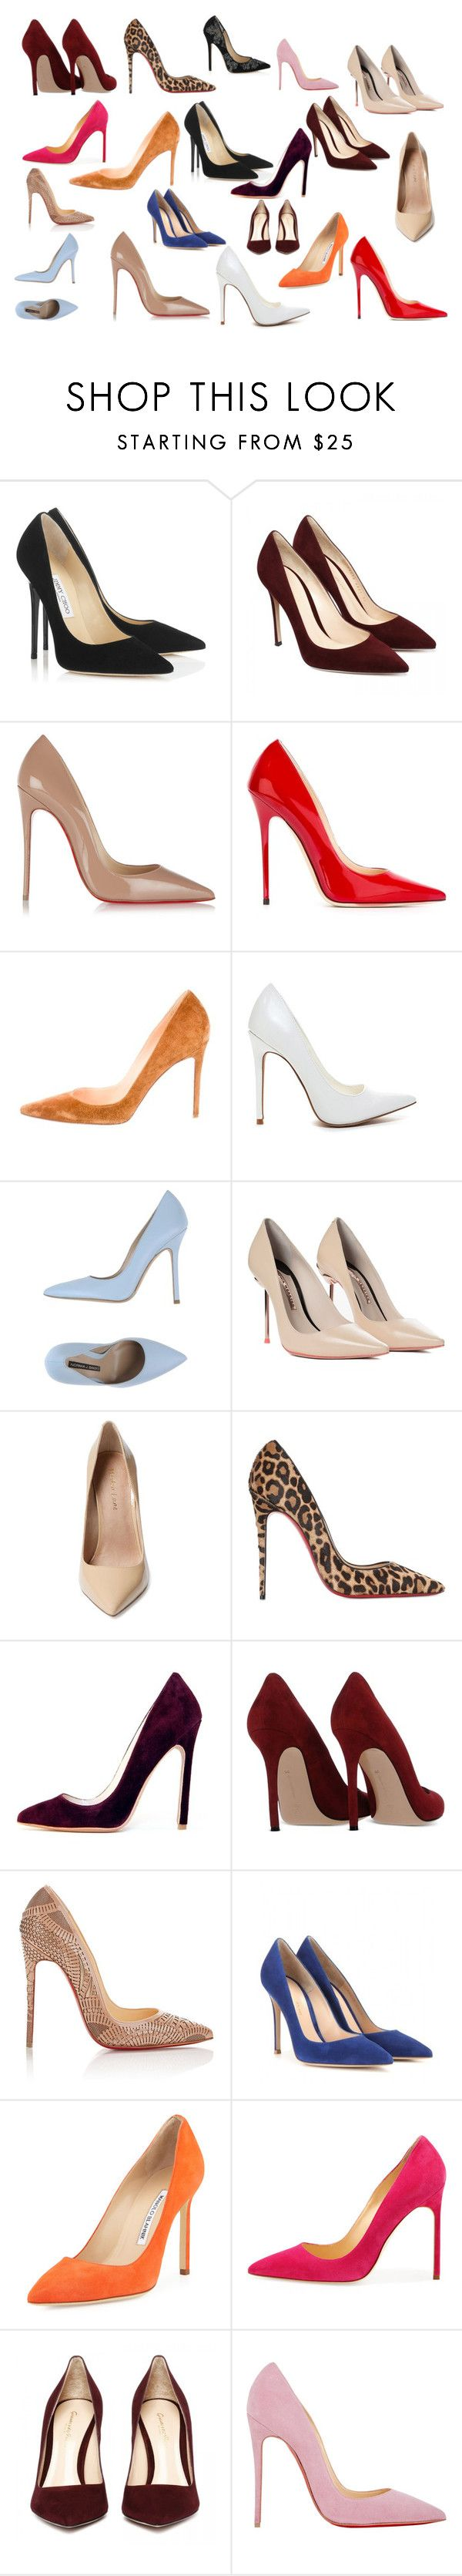 """Pump, pump pump it up"" by rosesanders on Polyvore featuring Jimmy Choo, Christian Louboutin, Norma J.Baker, Sophia Webster, Maiden Lane, Gianvito Rossi and Manolo Blahnik"